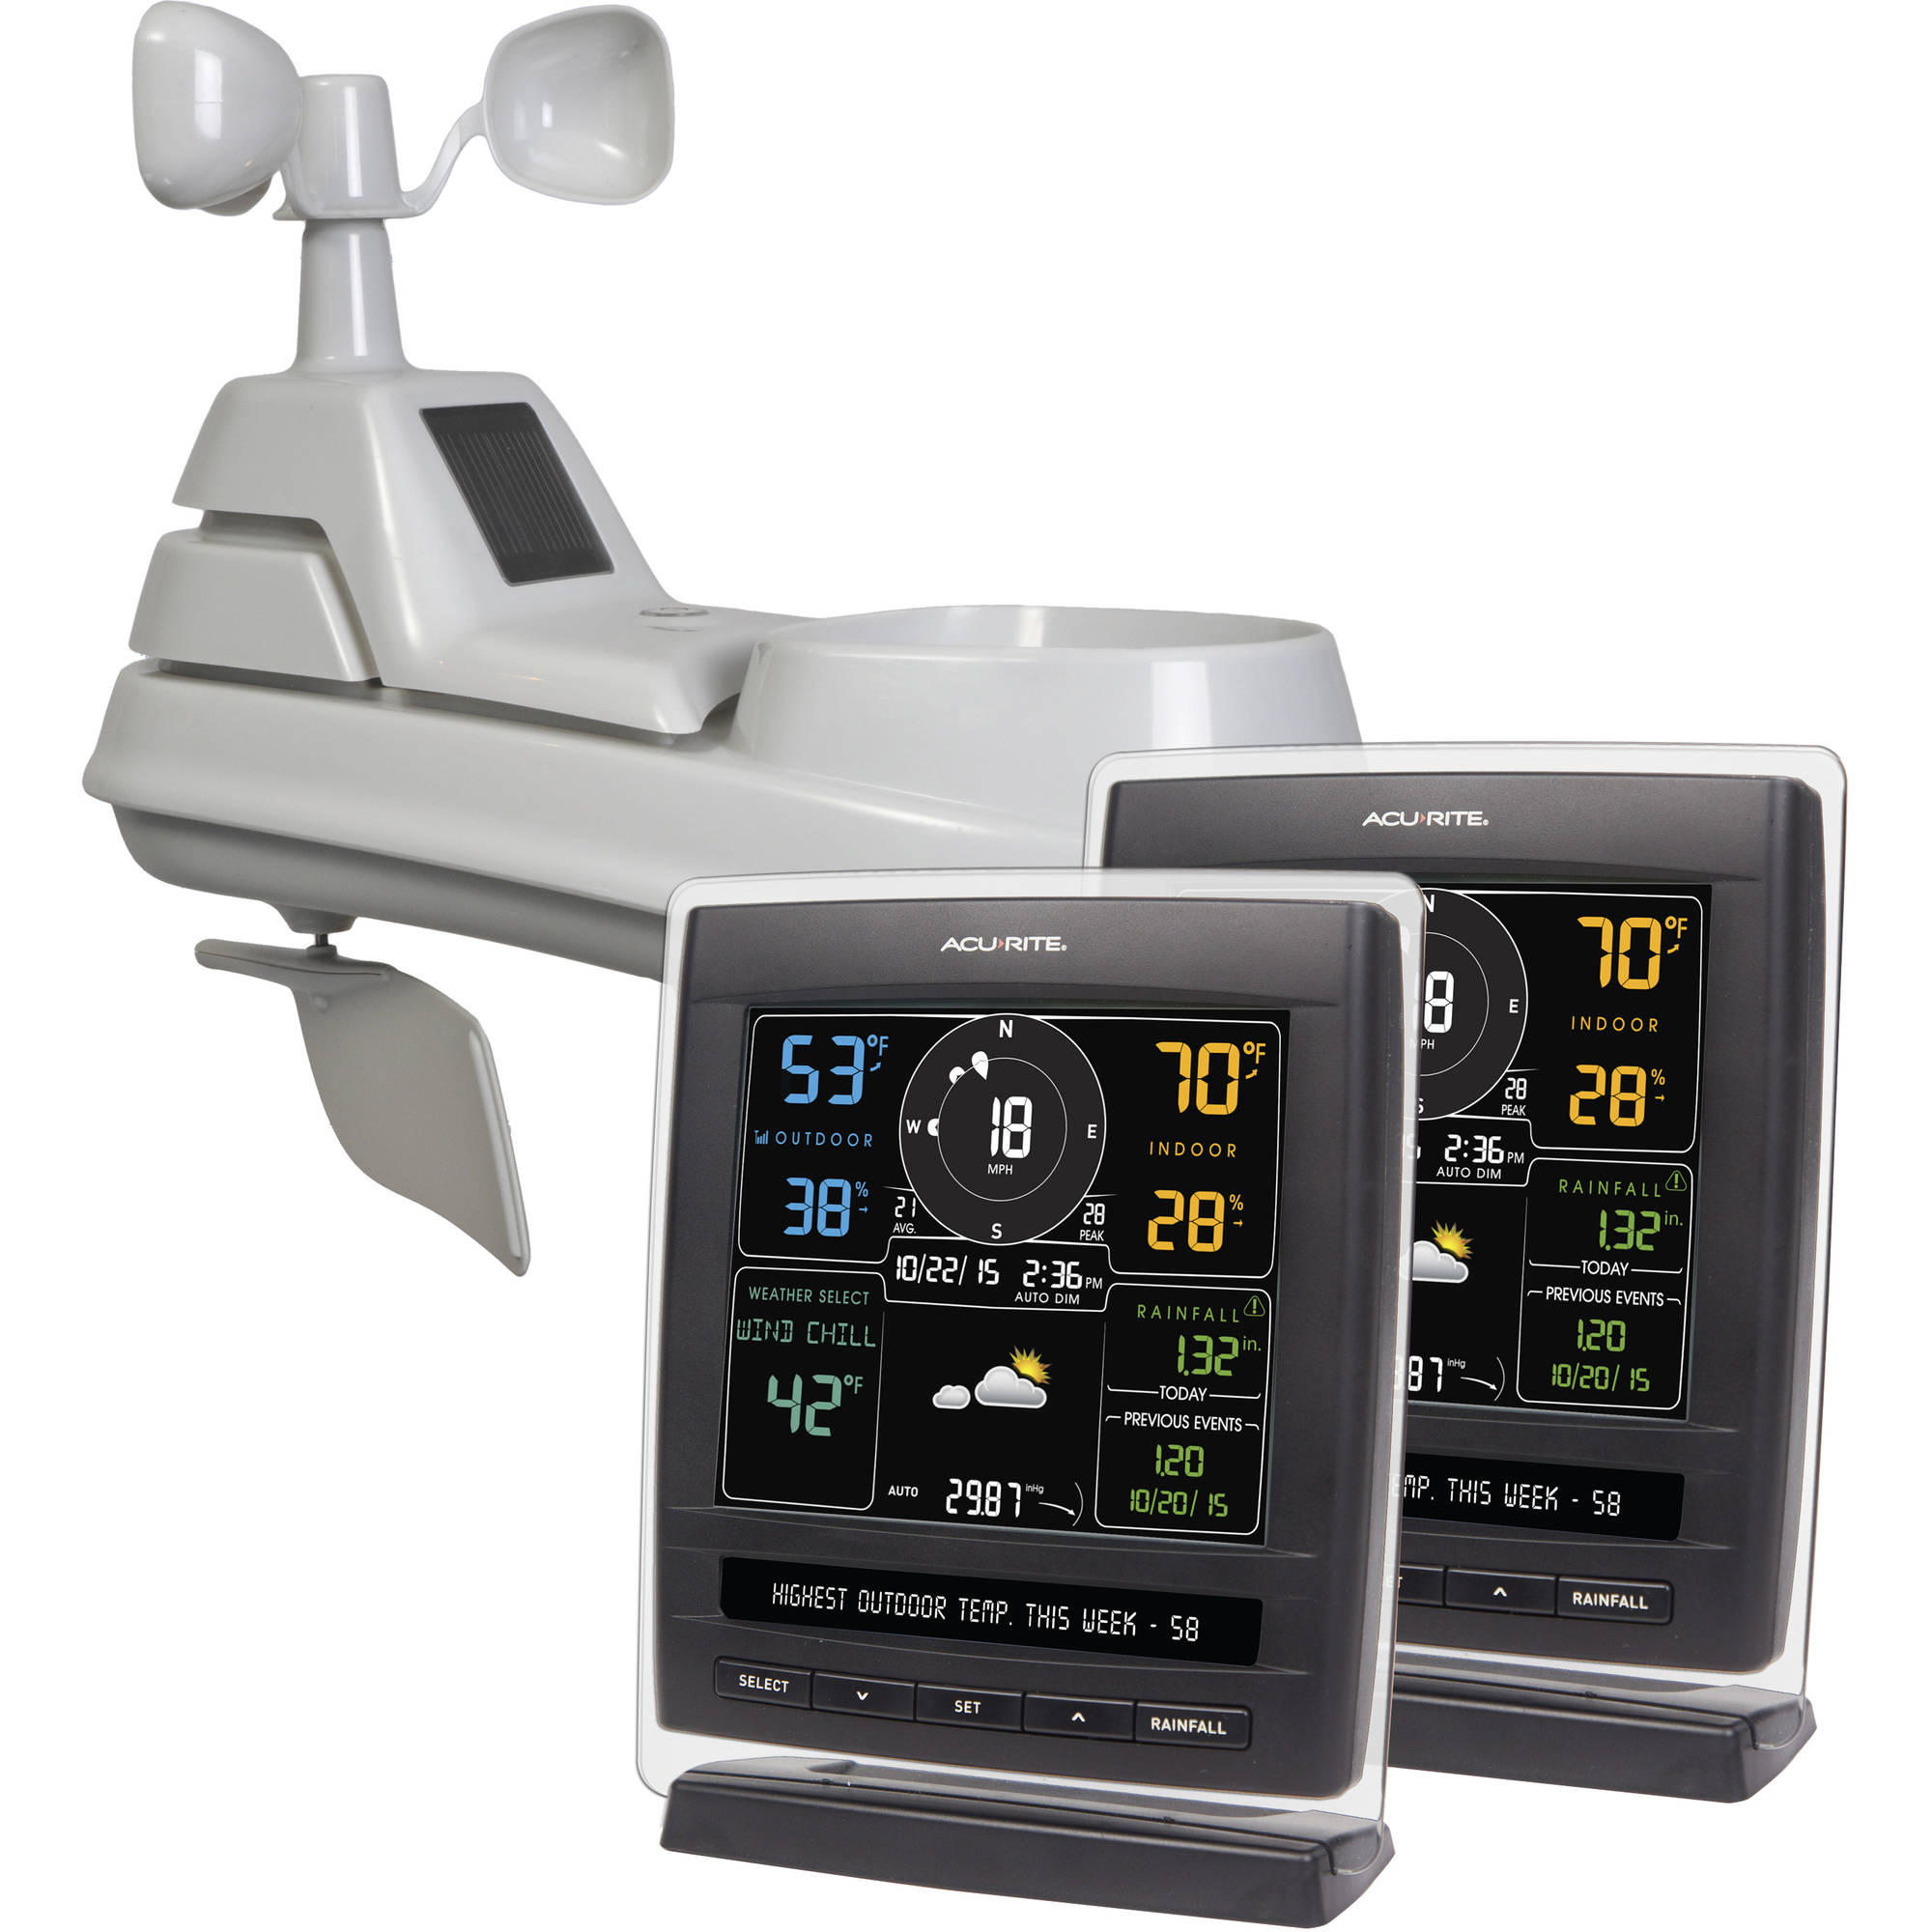 Image of AcuRite 5-in-1 Pro Weather Station with 2 Displays